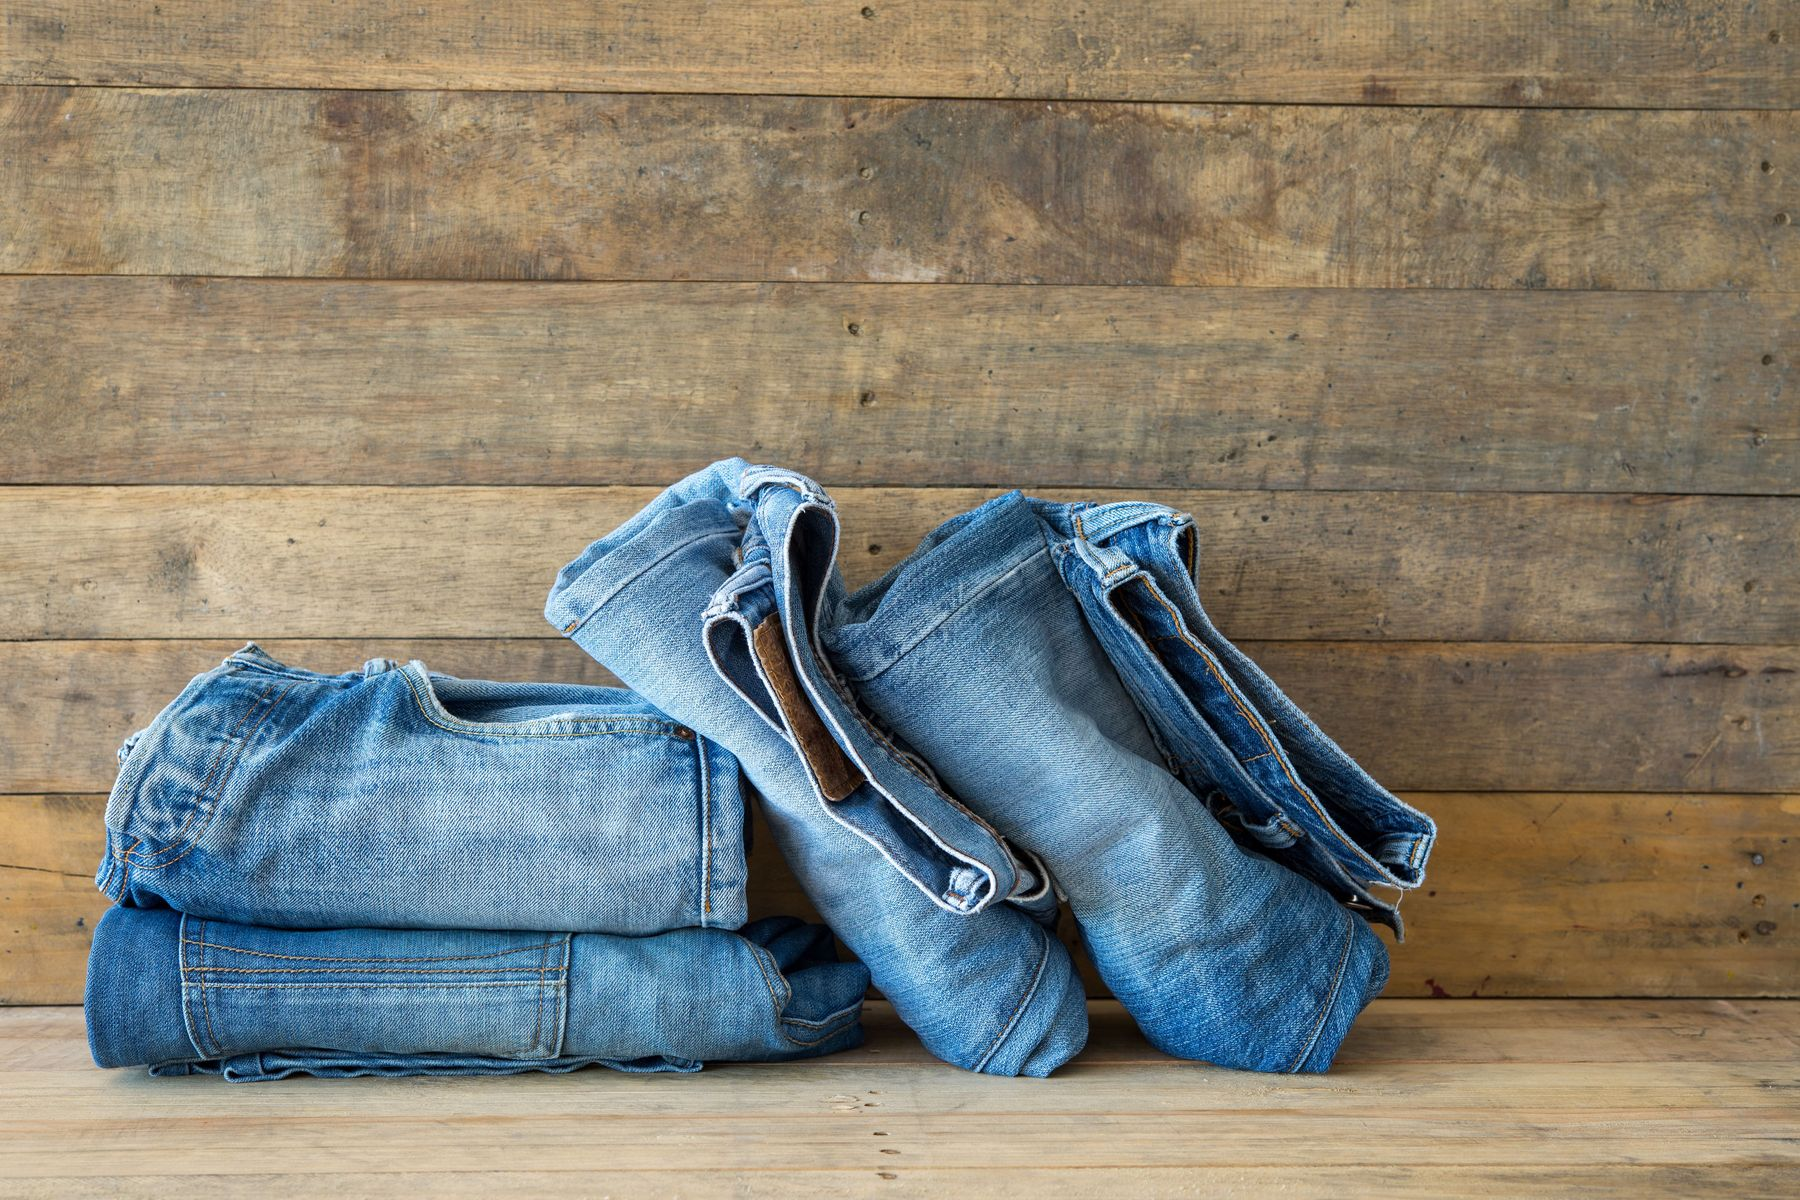 How to Make your Jeans Last Longer | Get Set Clean